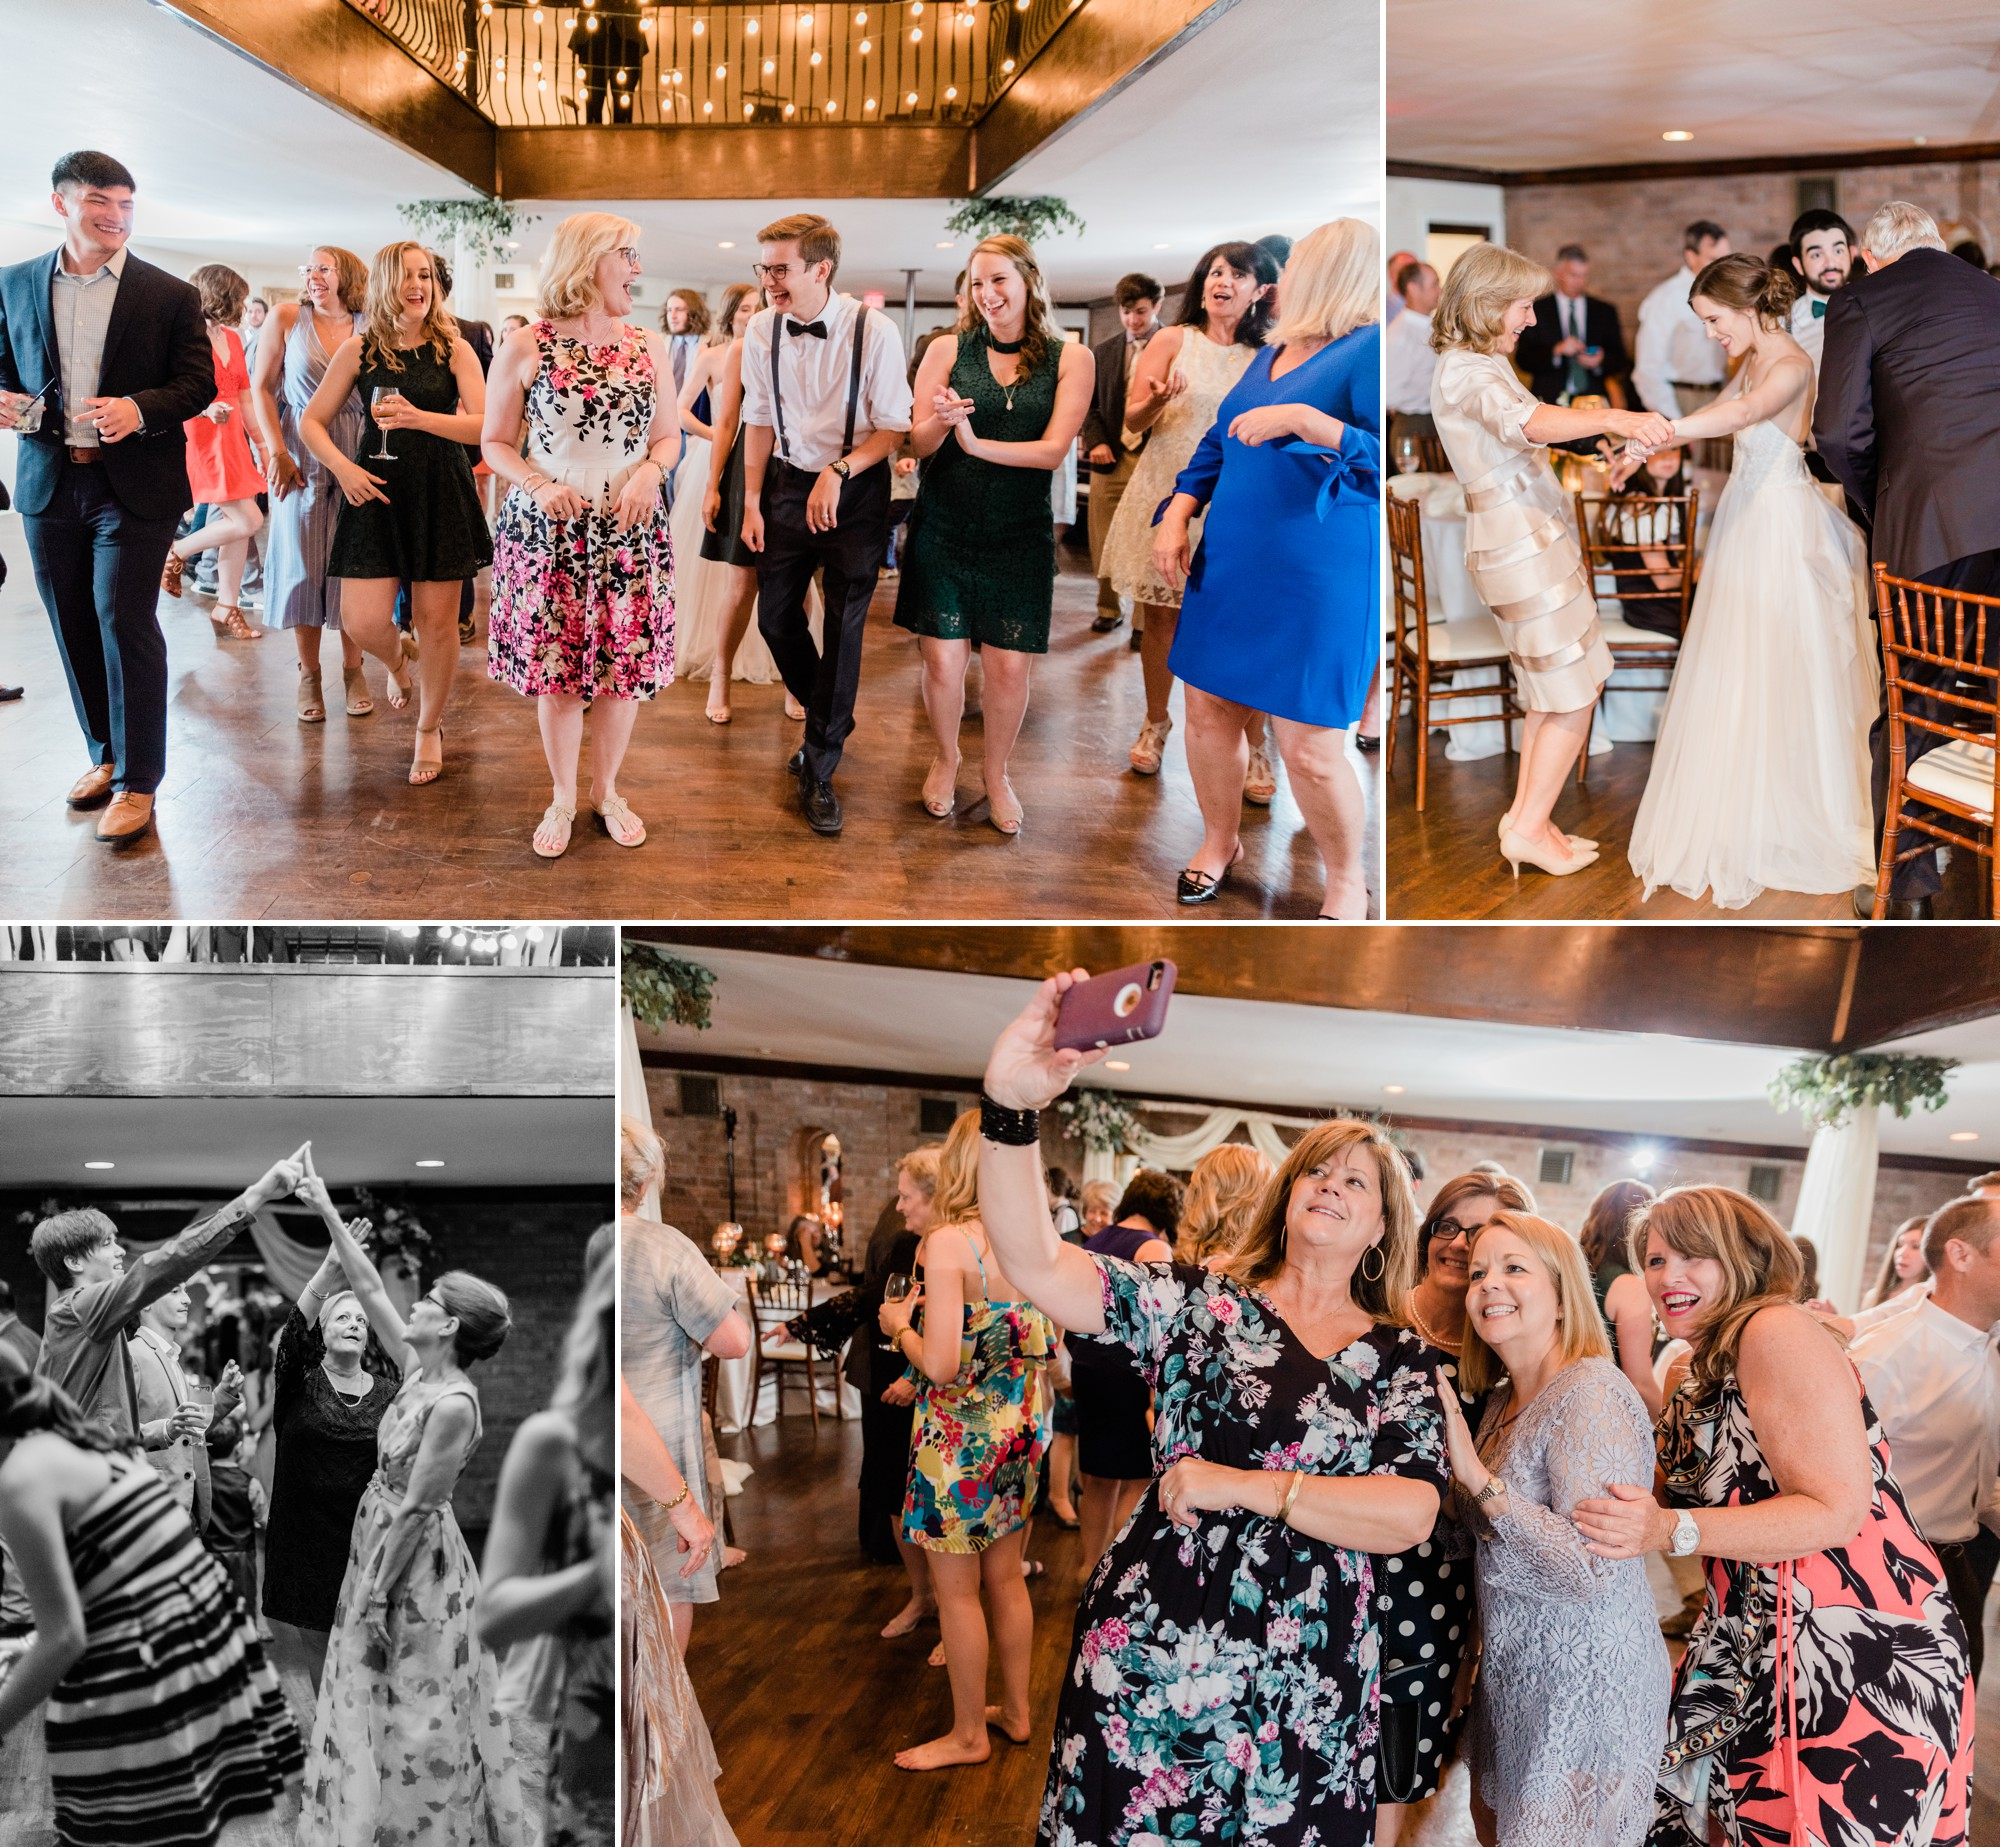 wedding guests dancing, spring wedding photo, the gallery, houston, texas, dreamy elk photography and design